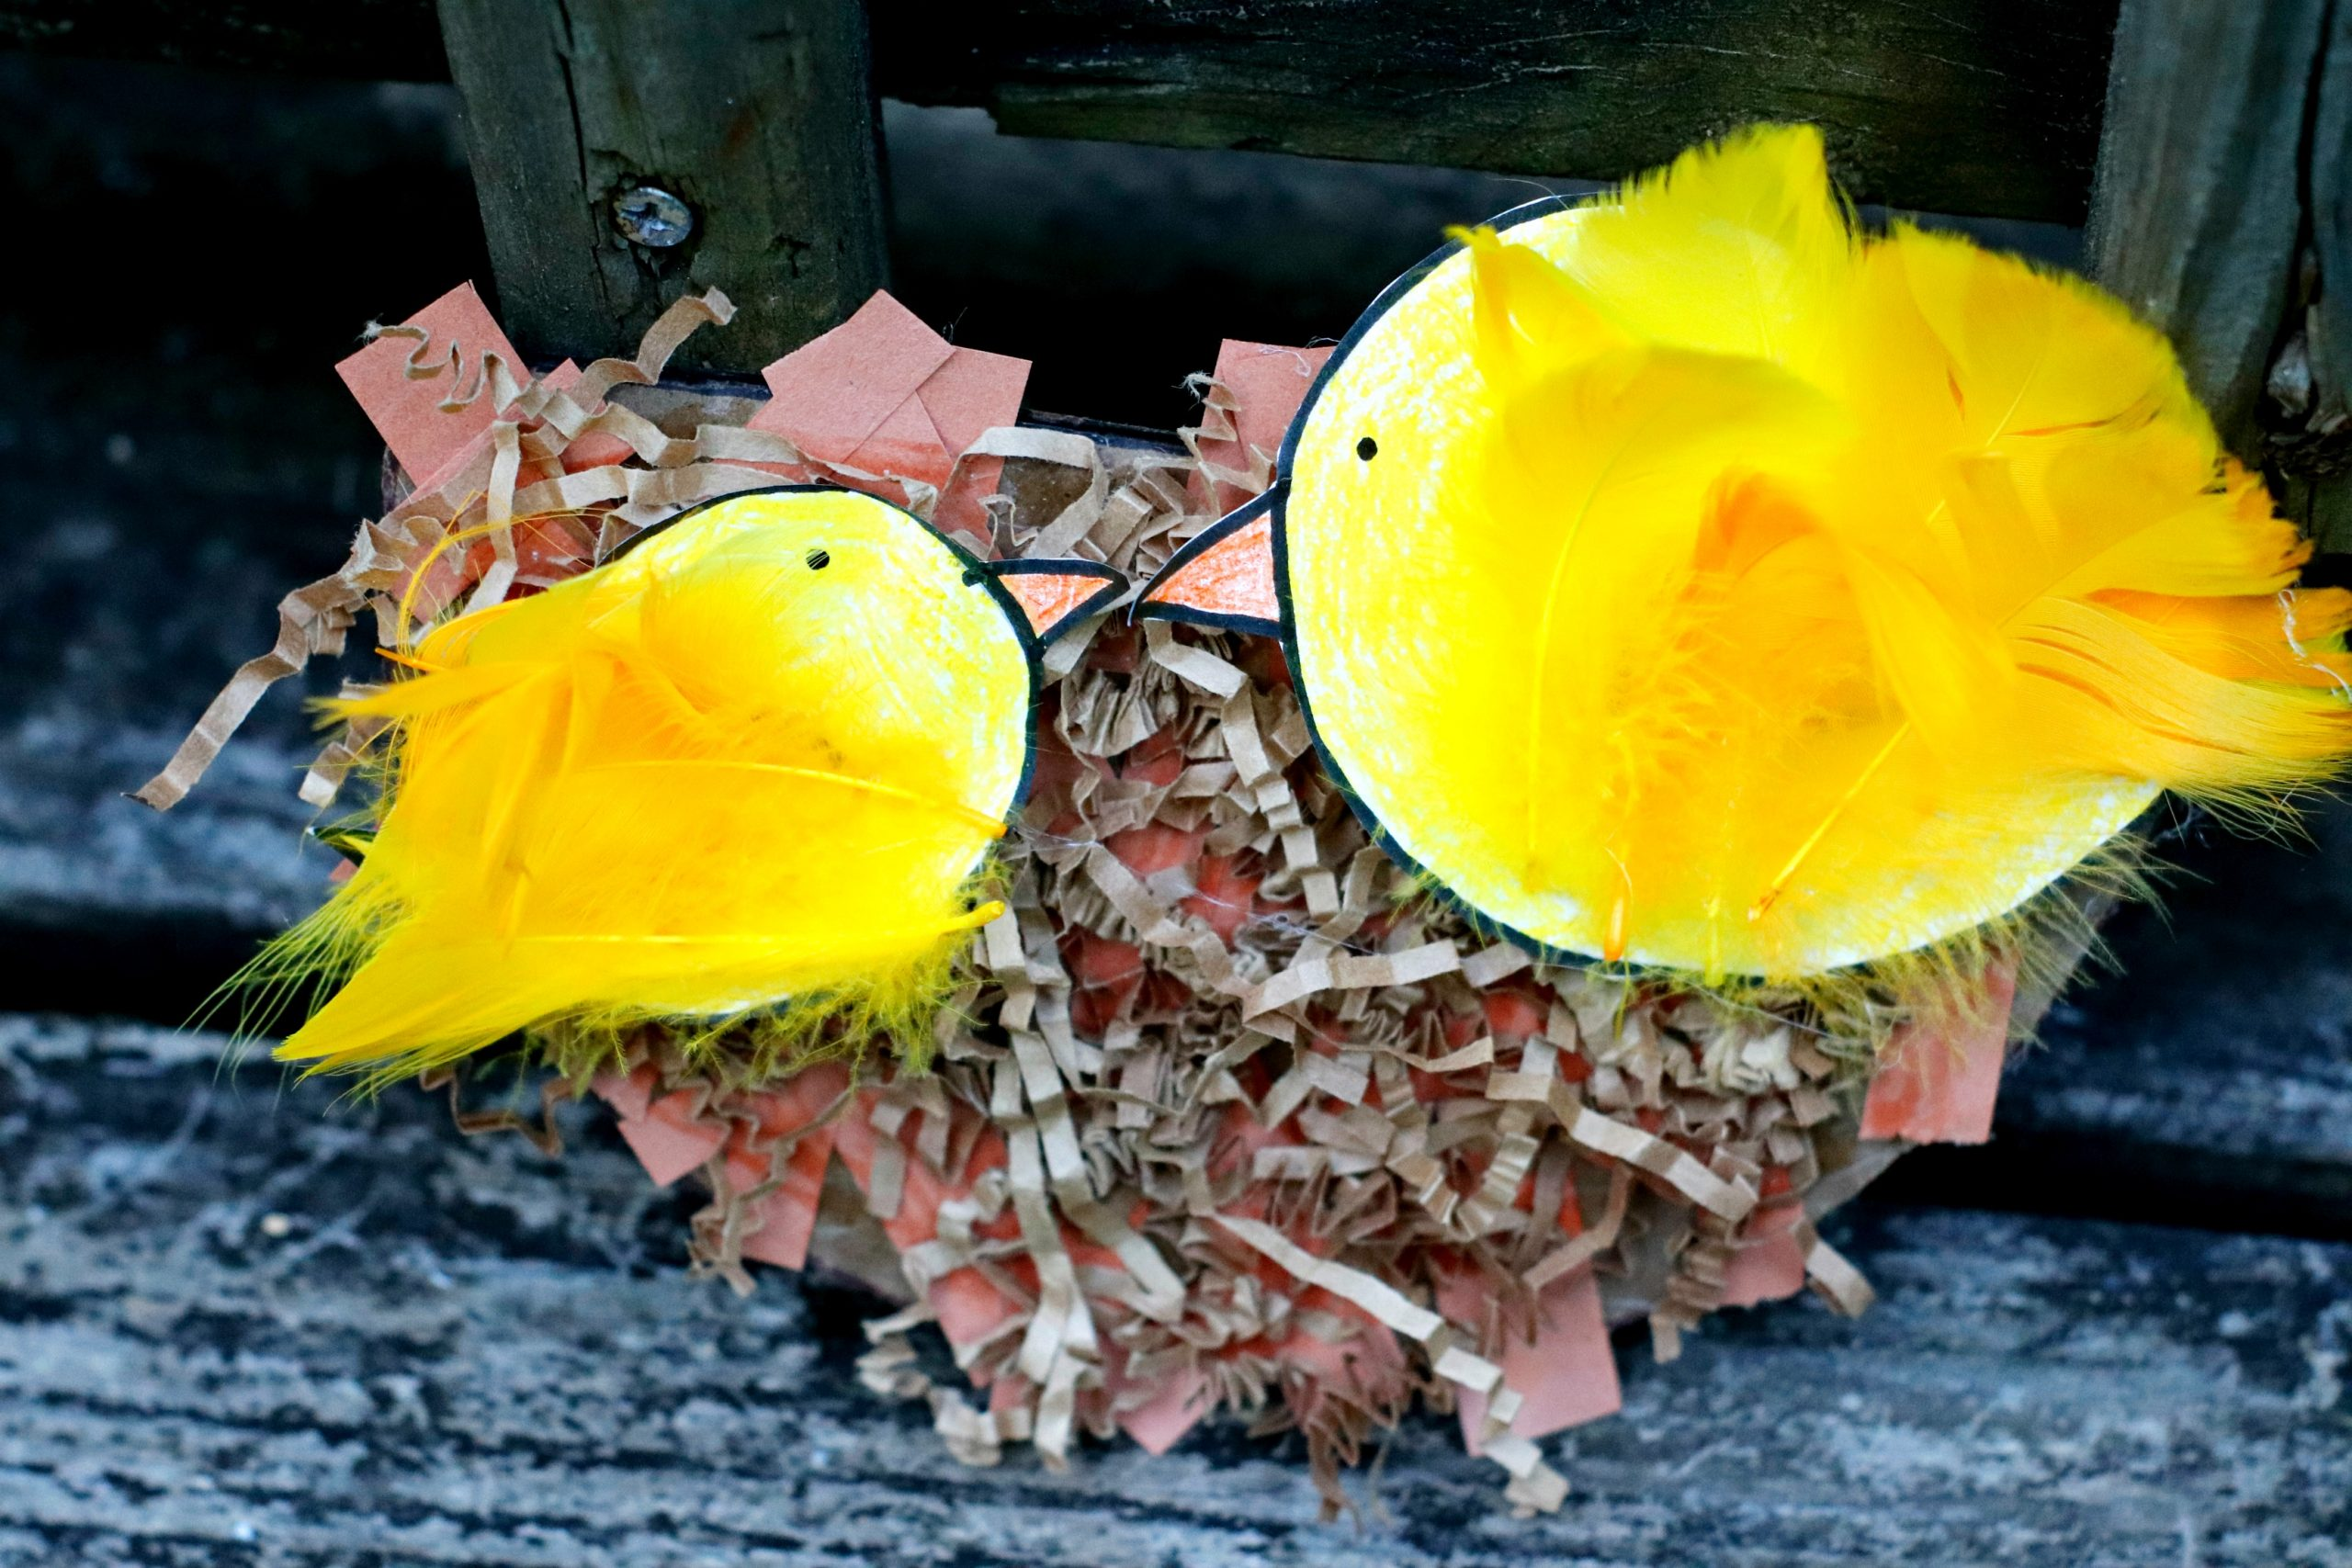 Mama and Baby Bird Nest Craft on a chair.